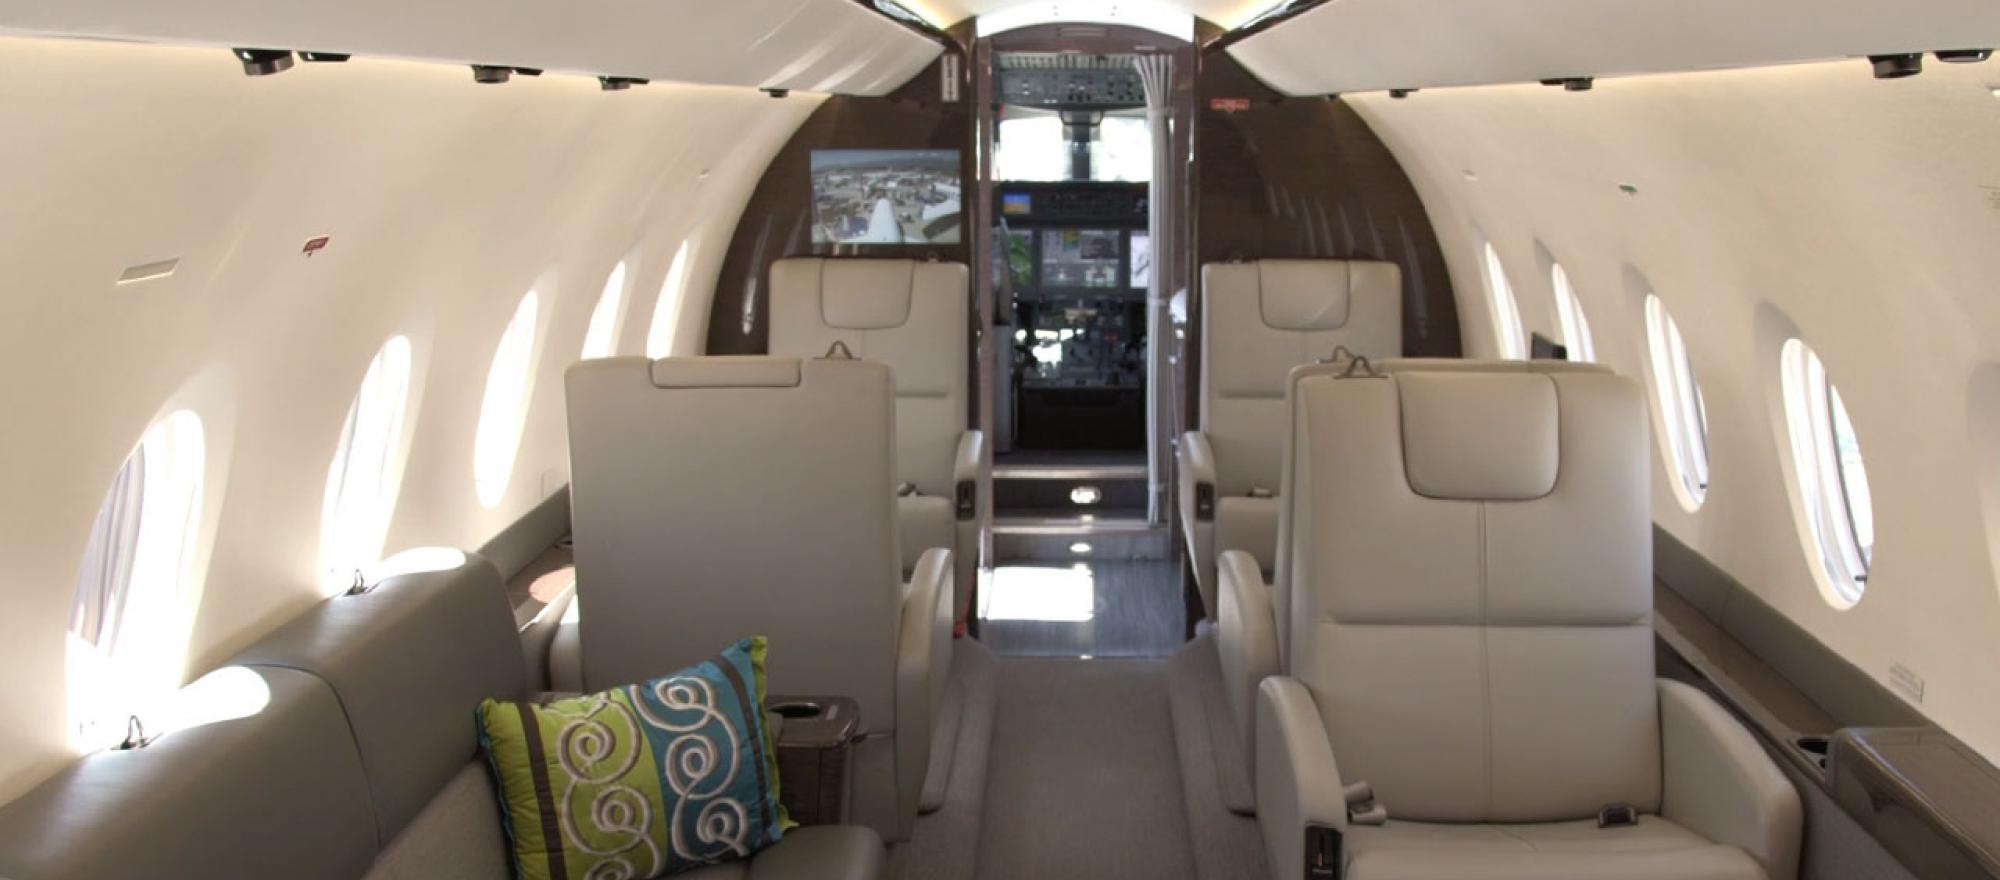 Interior of the Gulfstream G280